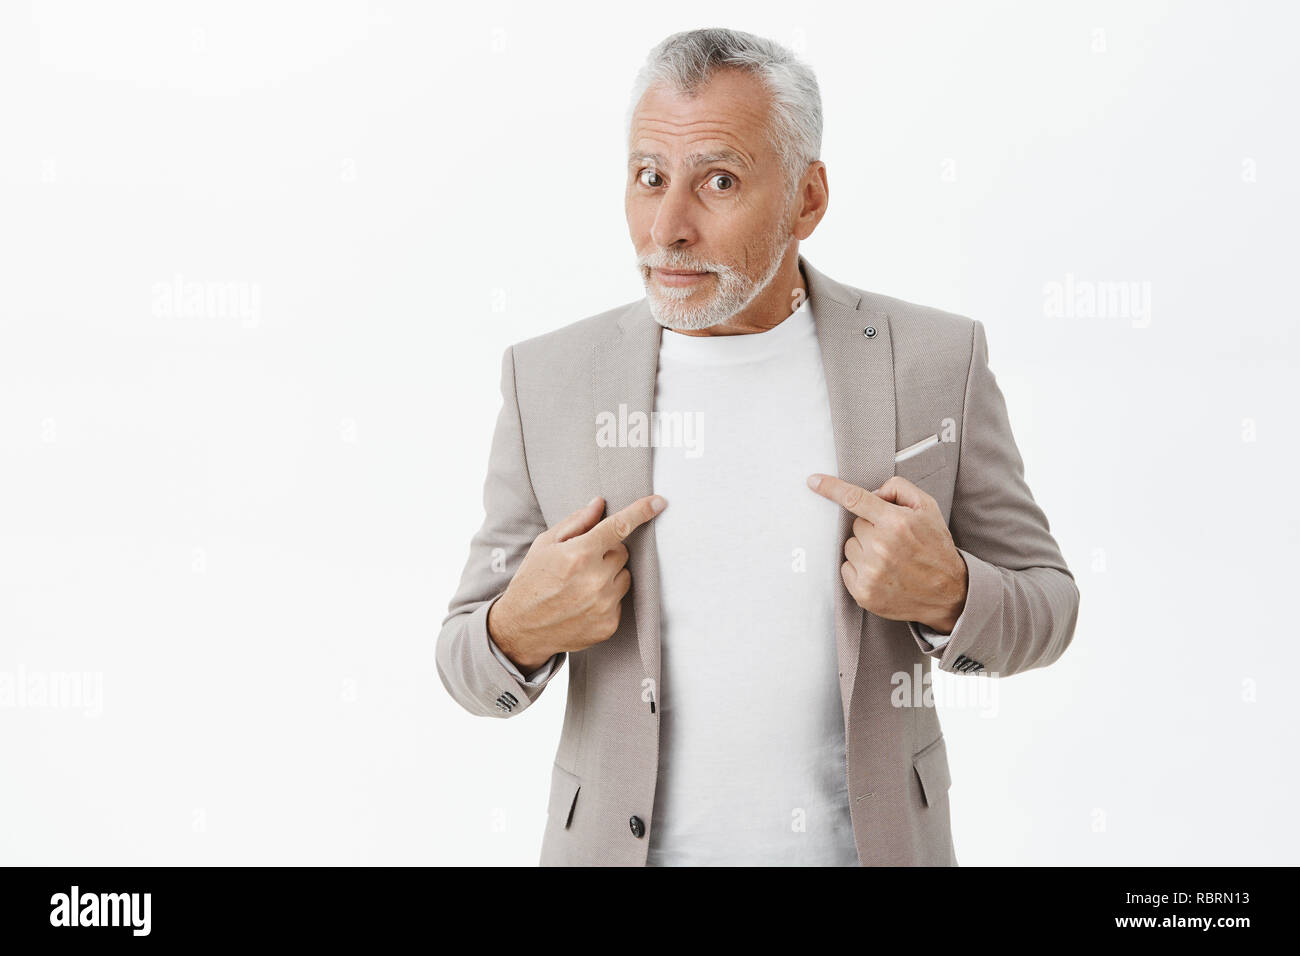 Man surprised and questioned being picked by boss standing unsure over grey wall in elegant formal suit pointing at himself and gazing confused at camera asking uncertain if people talking about him - Stock Image